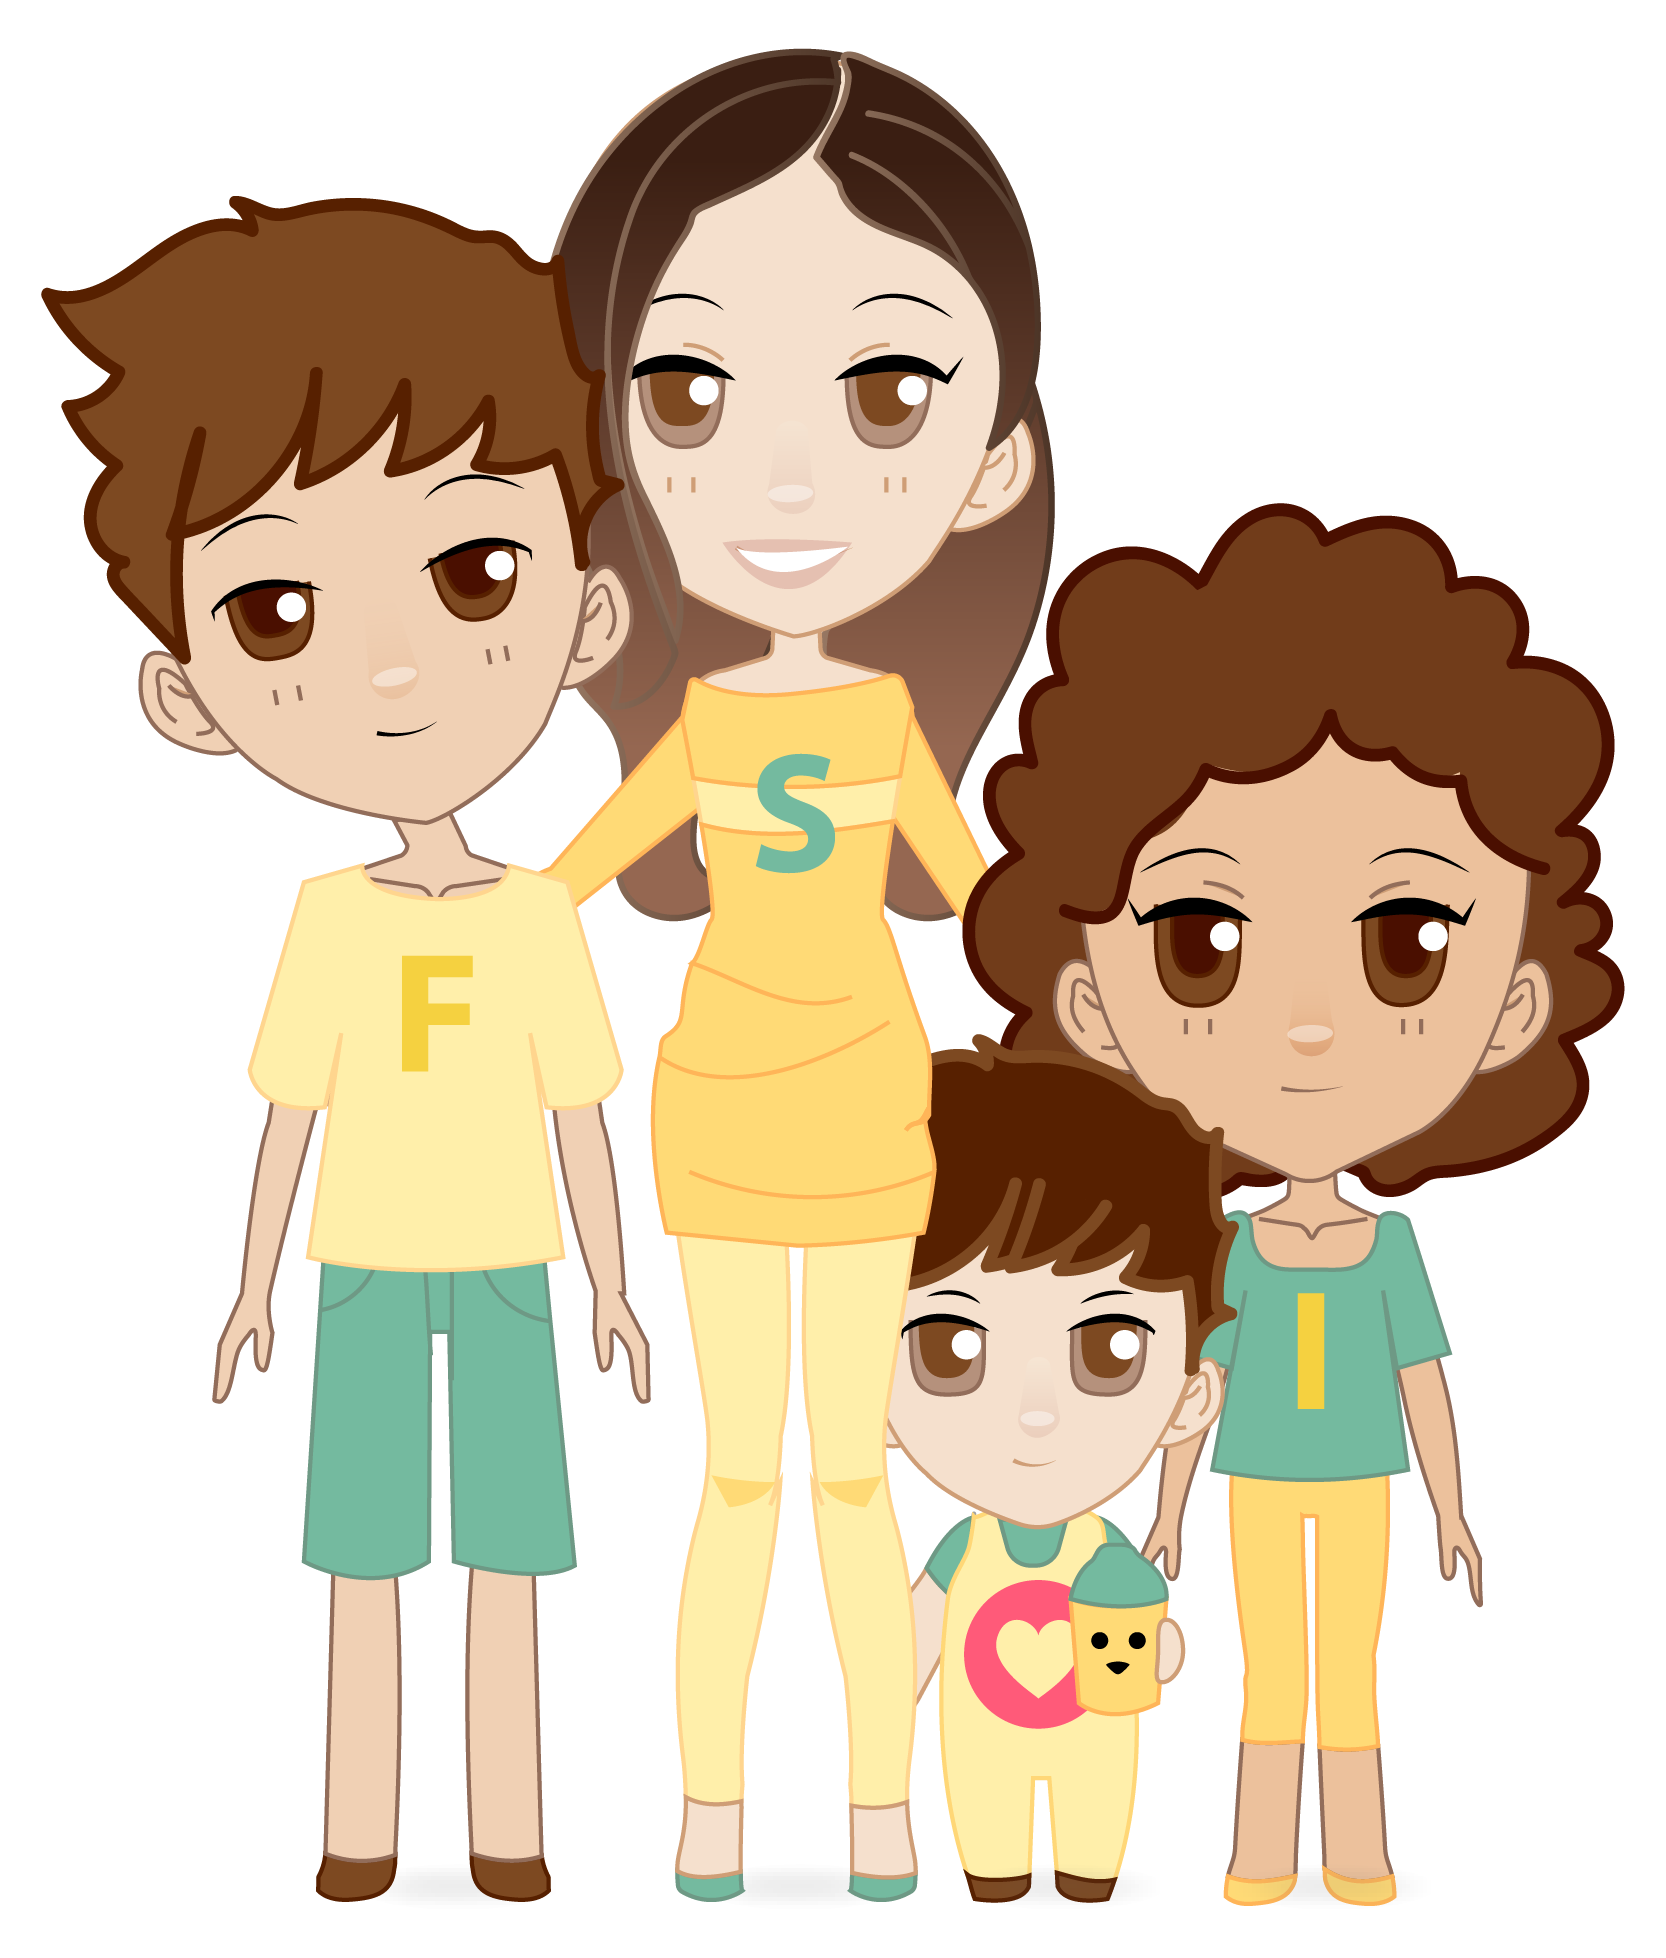 cartoon of a possible family unit with a parent and several children. The letters 'F,' 'S,' and 'I' appear on the shirts of the individuals